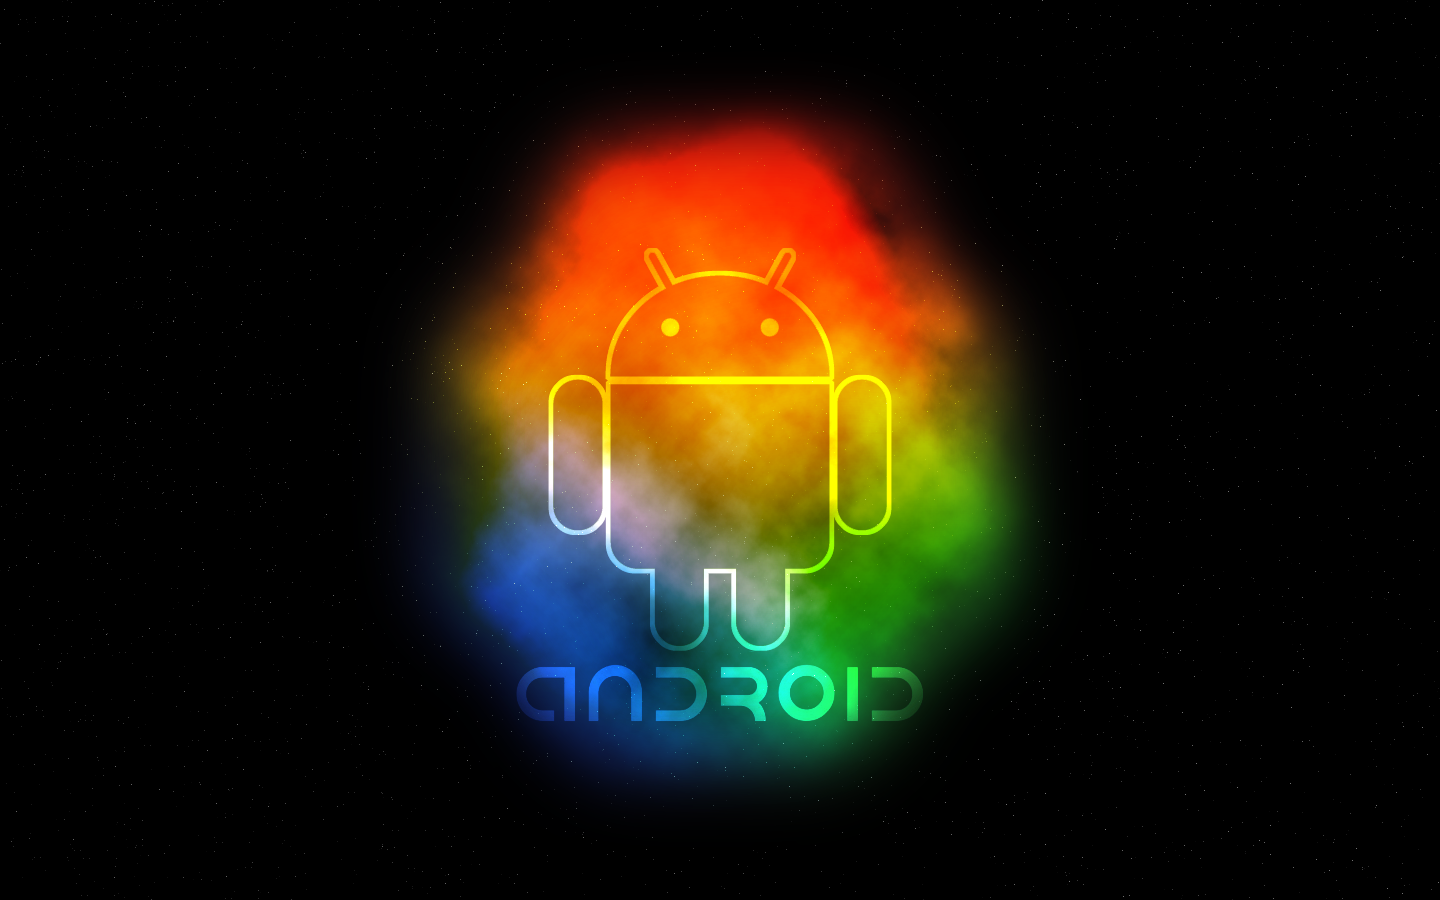 wallpaper for android tablet download 1440x900